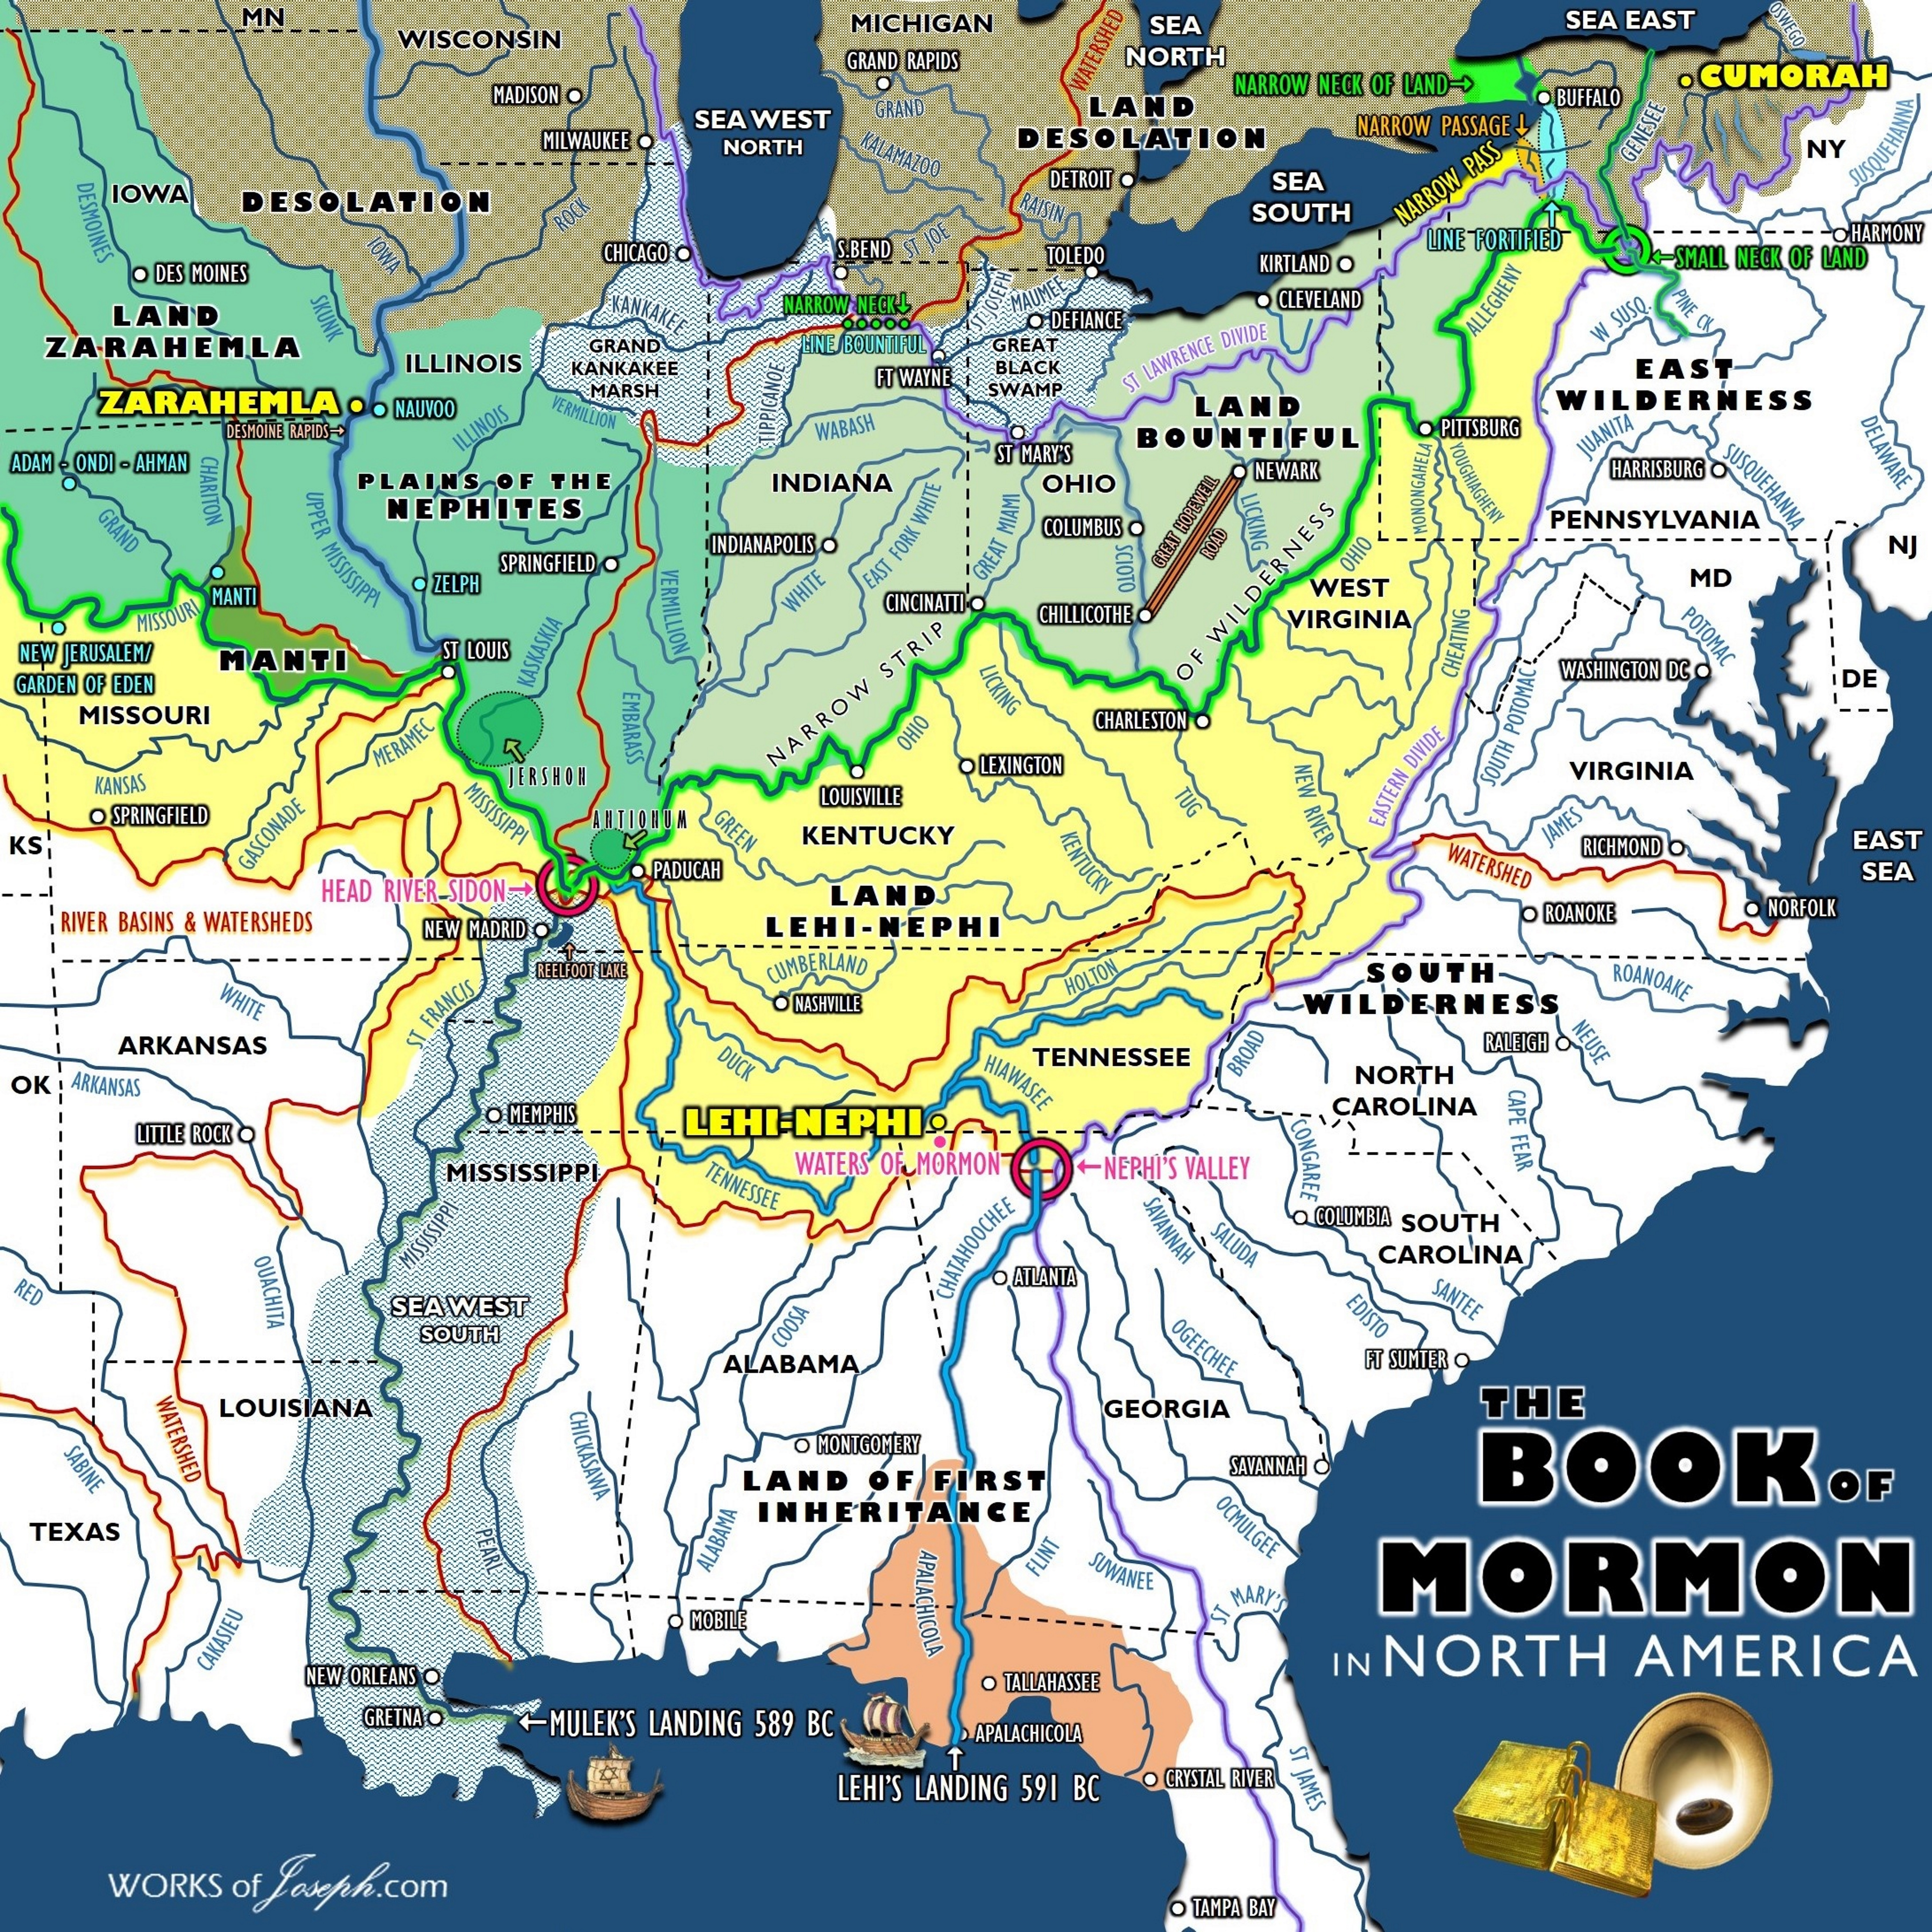 Maps of the Indians | Works of Joseph Indian Maps Of Usa on indian map of the united states, indian tribes around the usa, indian communities in usa, flowers of usa, indian tribes in usa, google map of indiana usa, states of usa, indian nations of north america, indian tribes of america, home of usa,